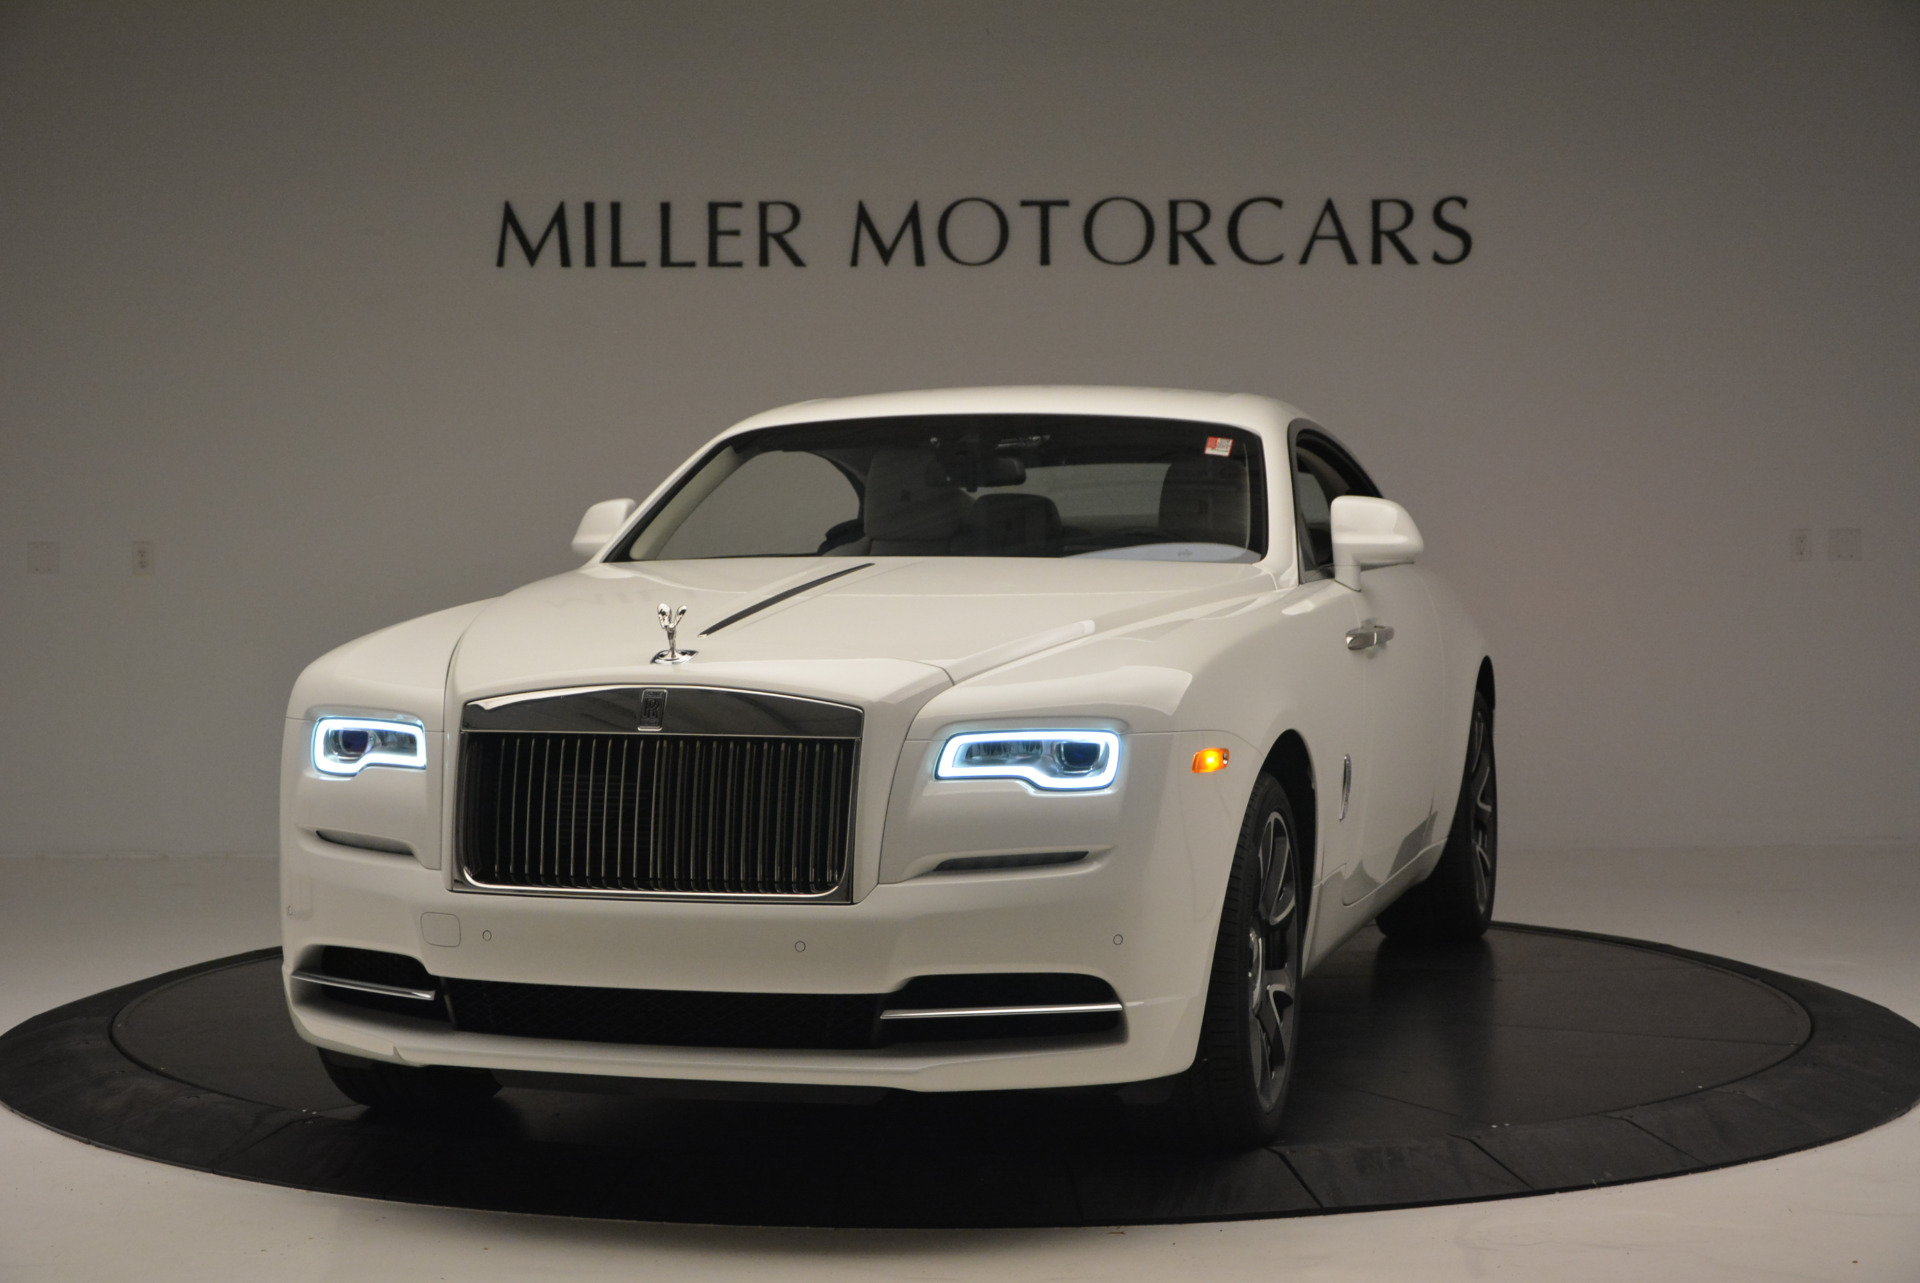 New 2017 Rolls-Royce Wraith for sale Sold at Bentley Greenwich in Greenwich CT 06830 1